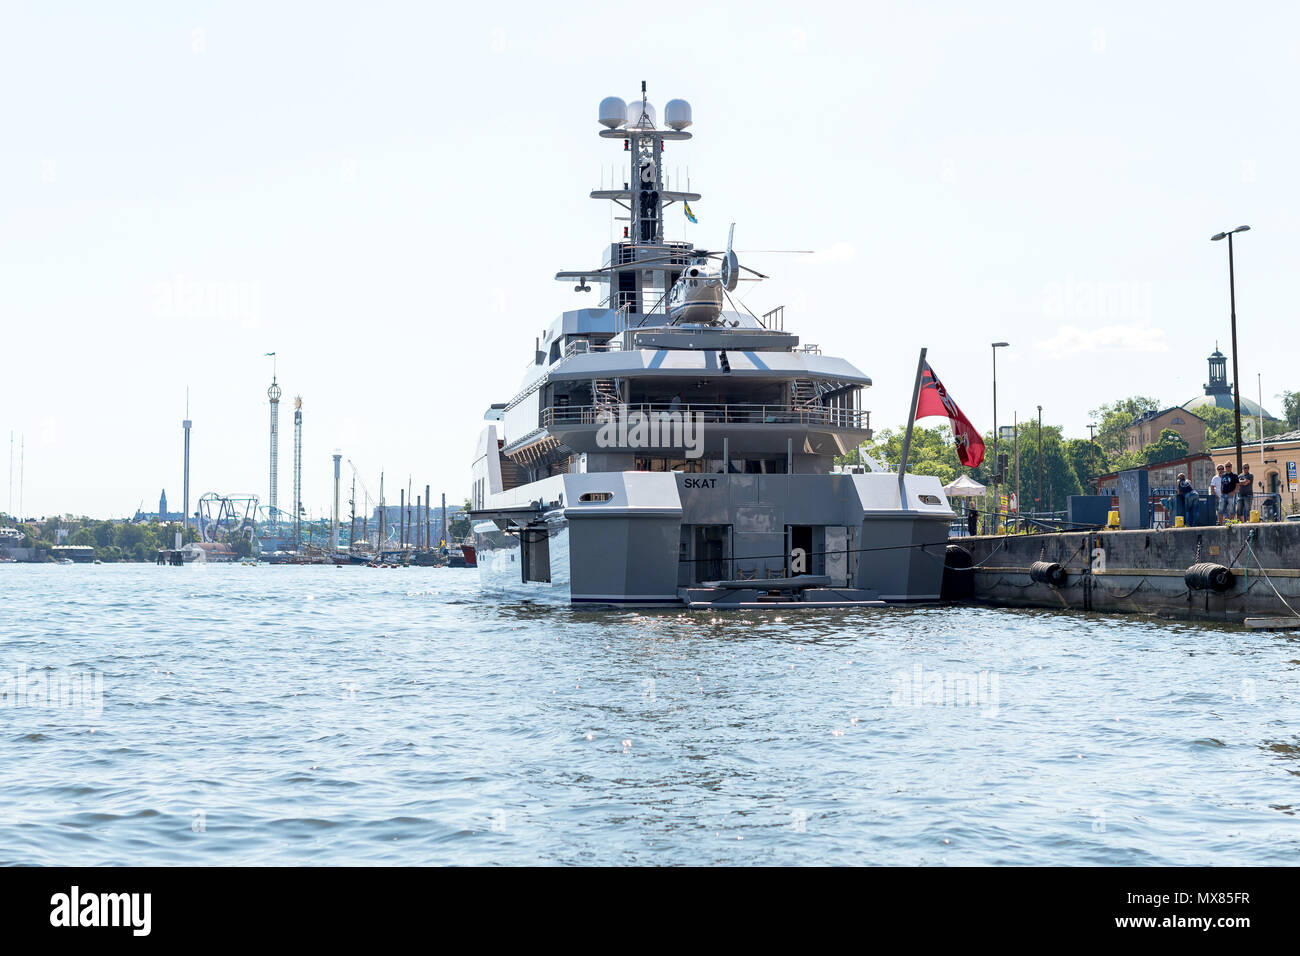 STOCKHOLM. SWEDEN. JUNE 2. 2018: The large luxury yacht M/S Skat embarked in Stockholm harbor. The ship is owned by the former Microsoft engineer ...